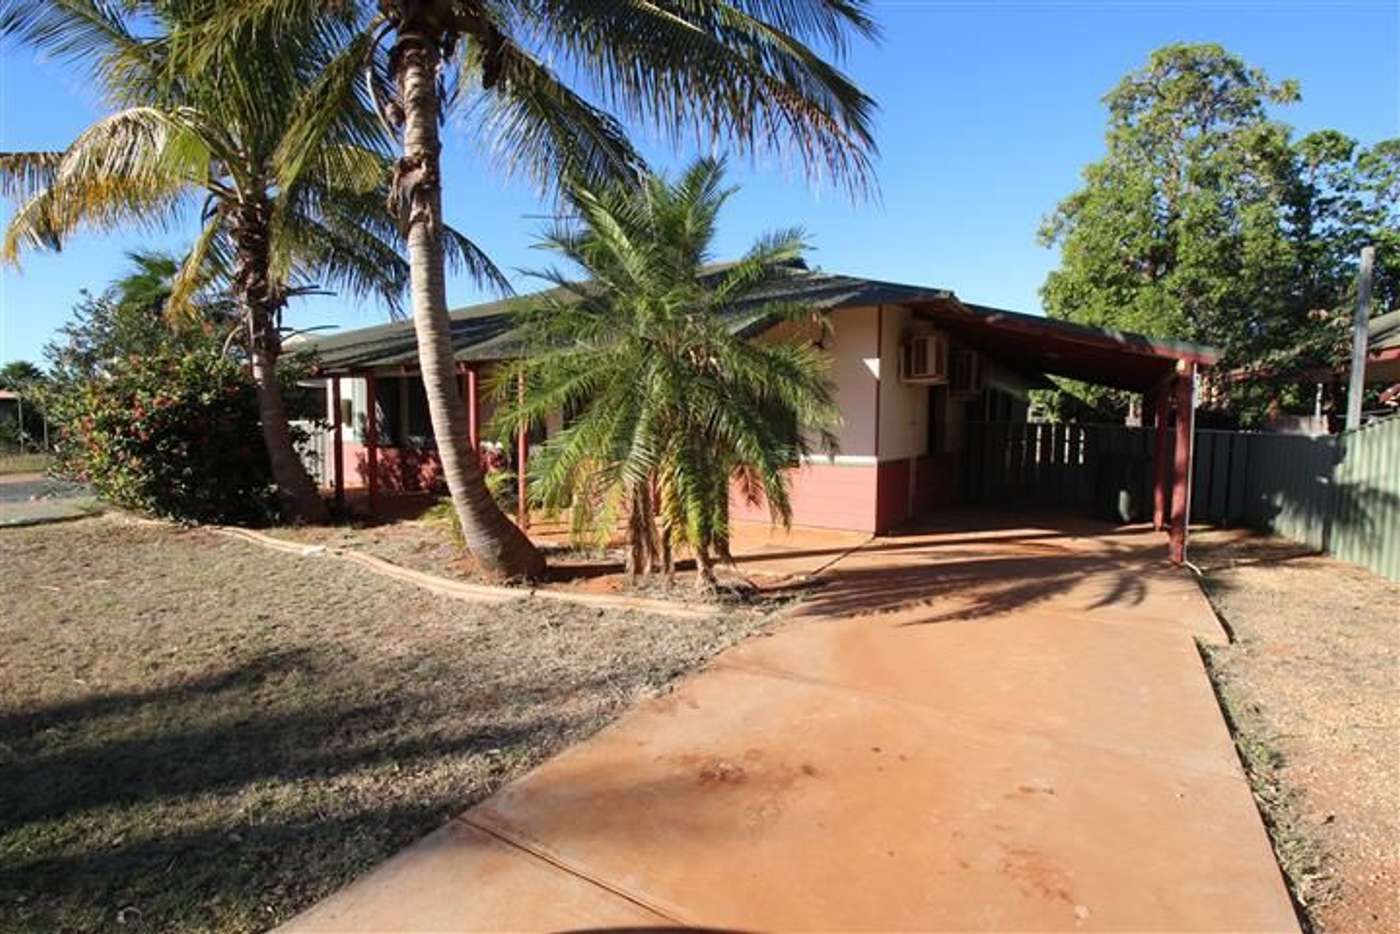 Main view of Homely house listing, 15 Skippers Loop, South Hedland WA 6722